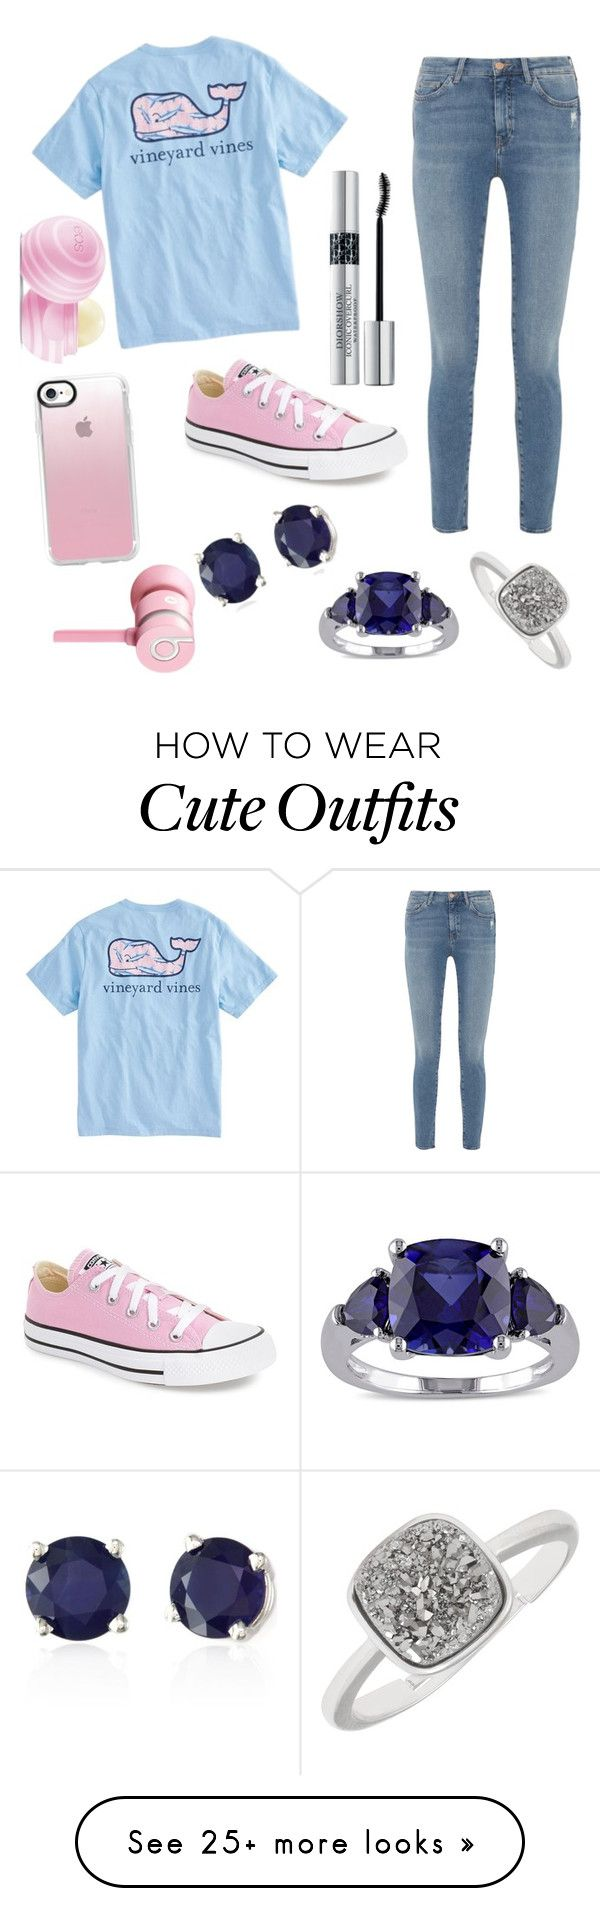 """""""Cute outfits for school"""" by amiyafulton037 on Polyvore featuring Vineyard Vines, M.i.h Jeans, Converse, Effy Jewelry, Miadora, Casetify, Christian Dior, Beats by Dr. Dre and Eos"""